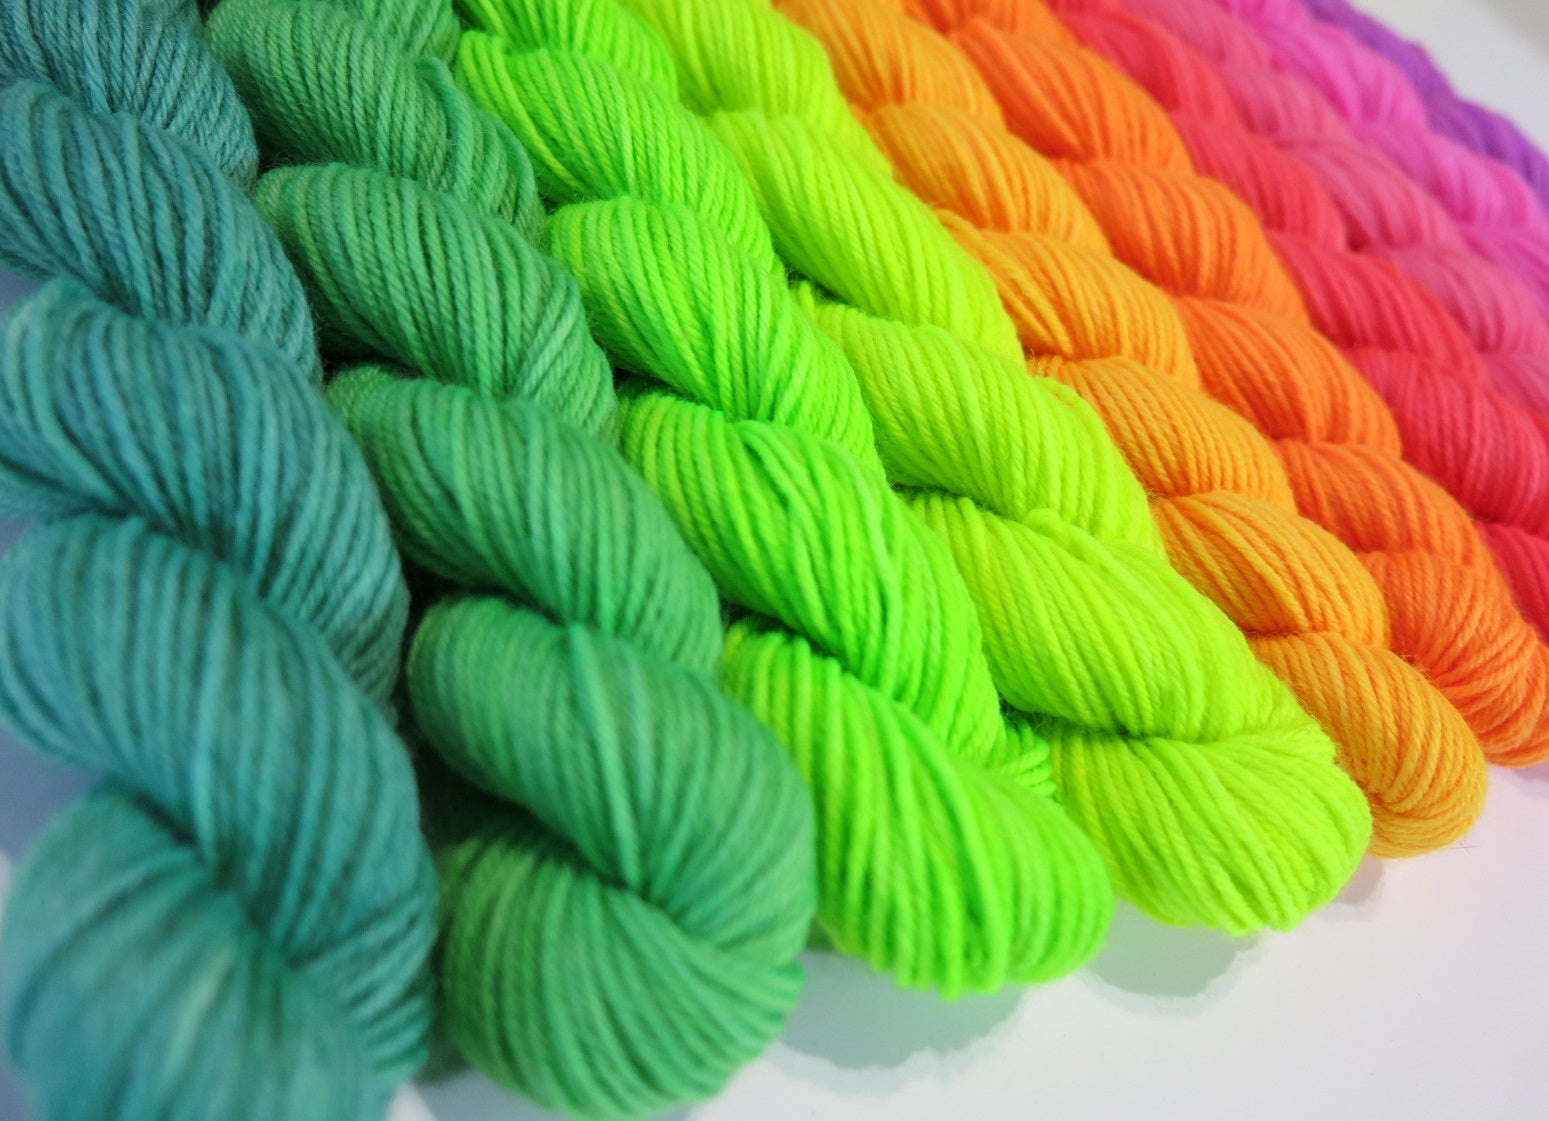 ten 20g uv neon rainbow mini skeins for knitting and crochet